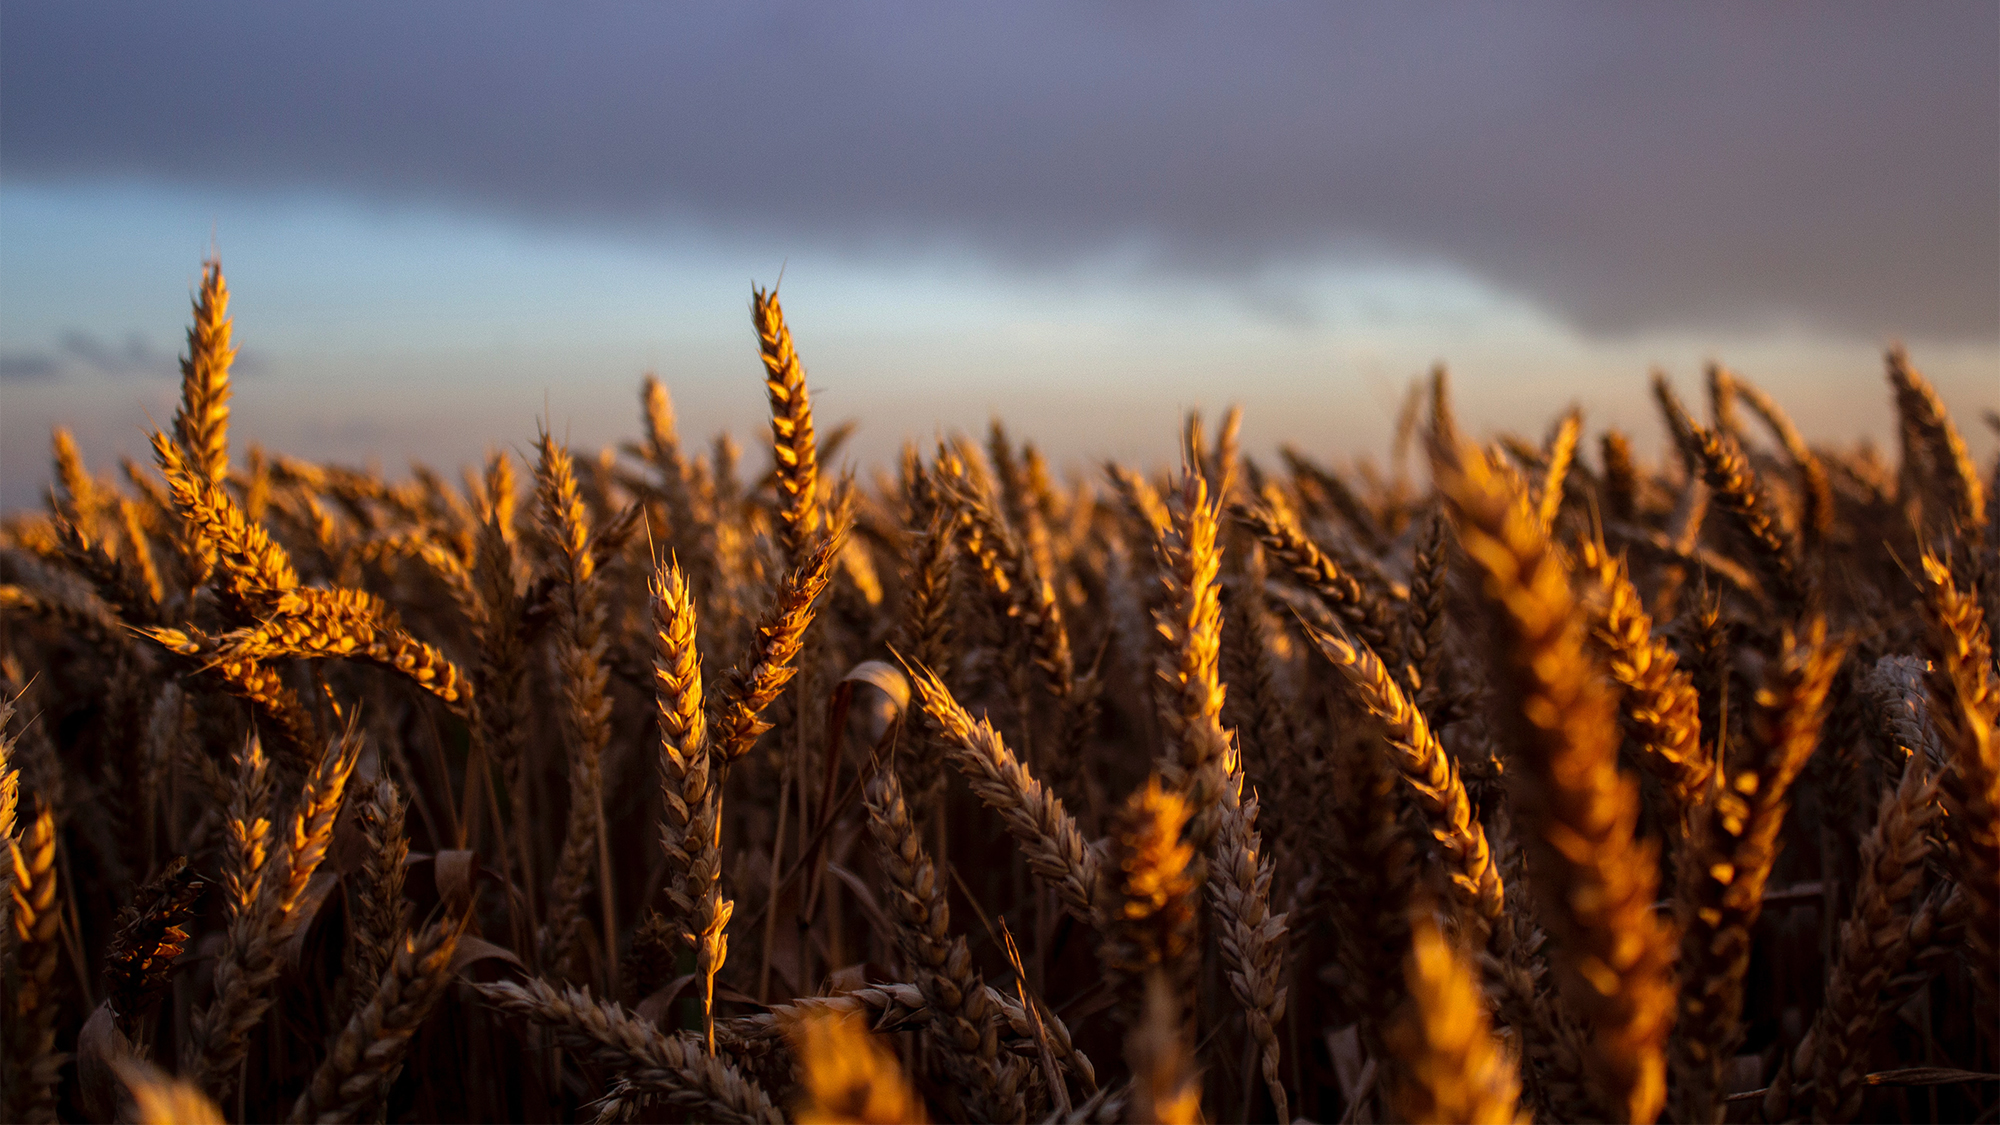 Russian Wheat Prices Tumbled on Bumper Crop Expectations but Starting Yields Don't Confirm Them